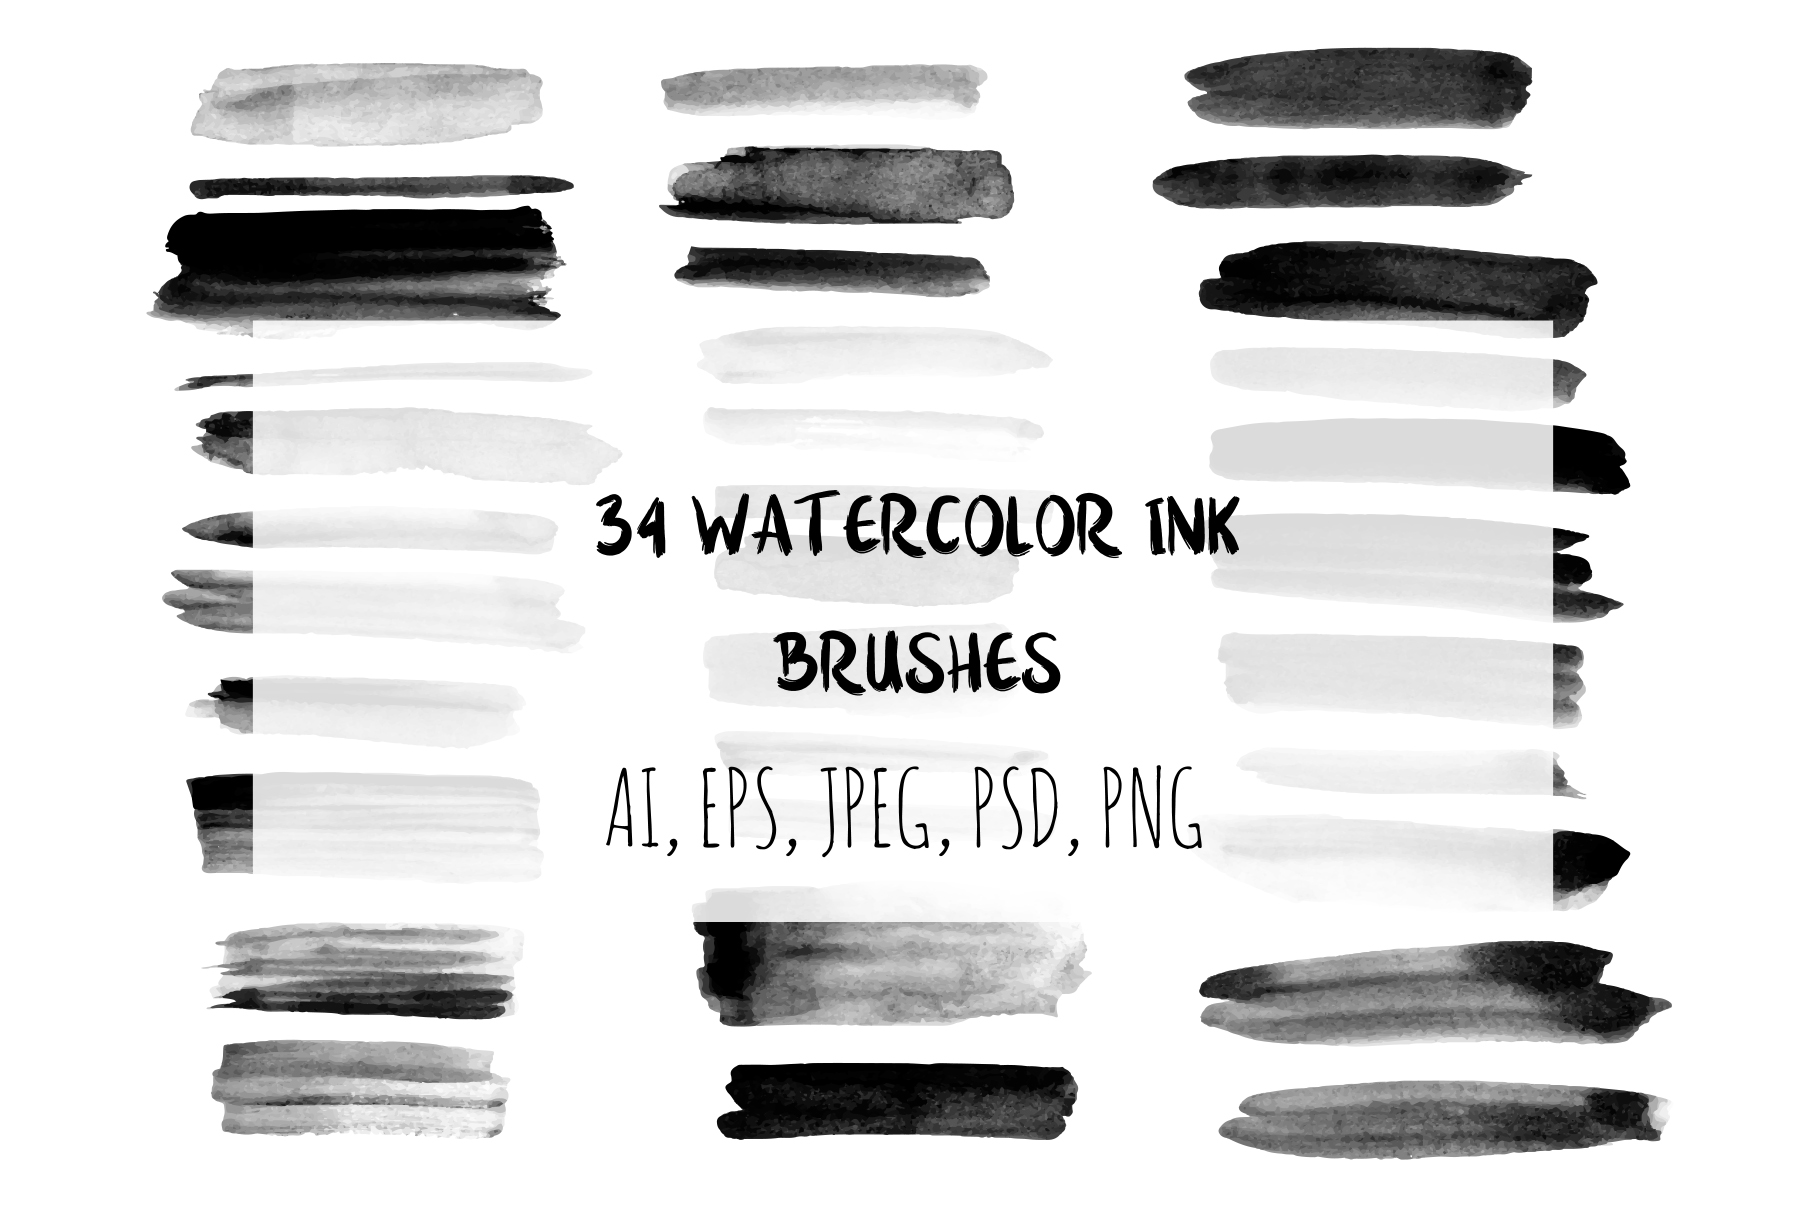 34 Watercolor Ink Brushes. Graphic Brushes By alisared87